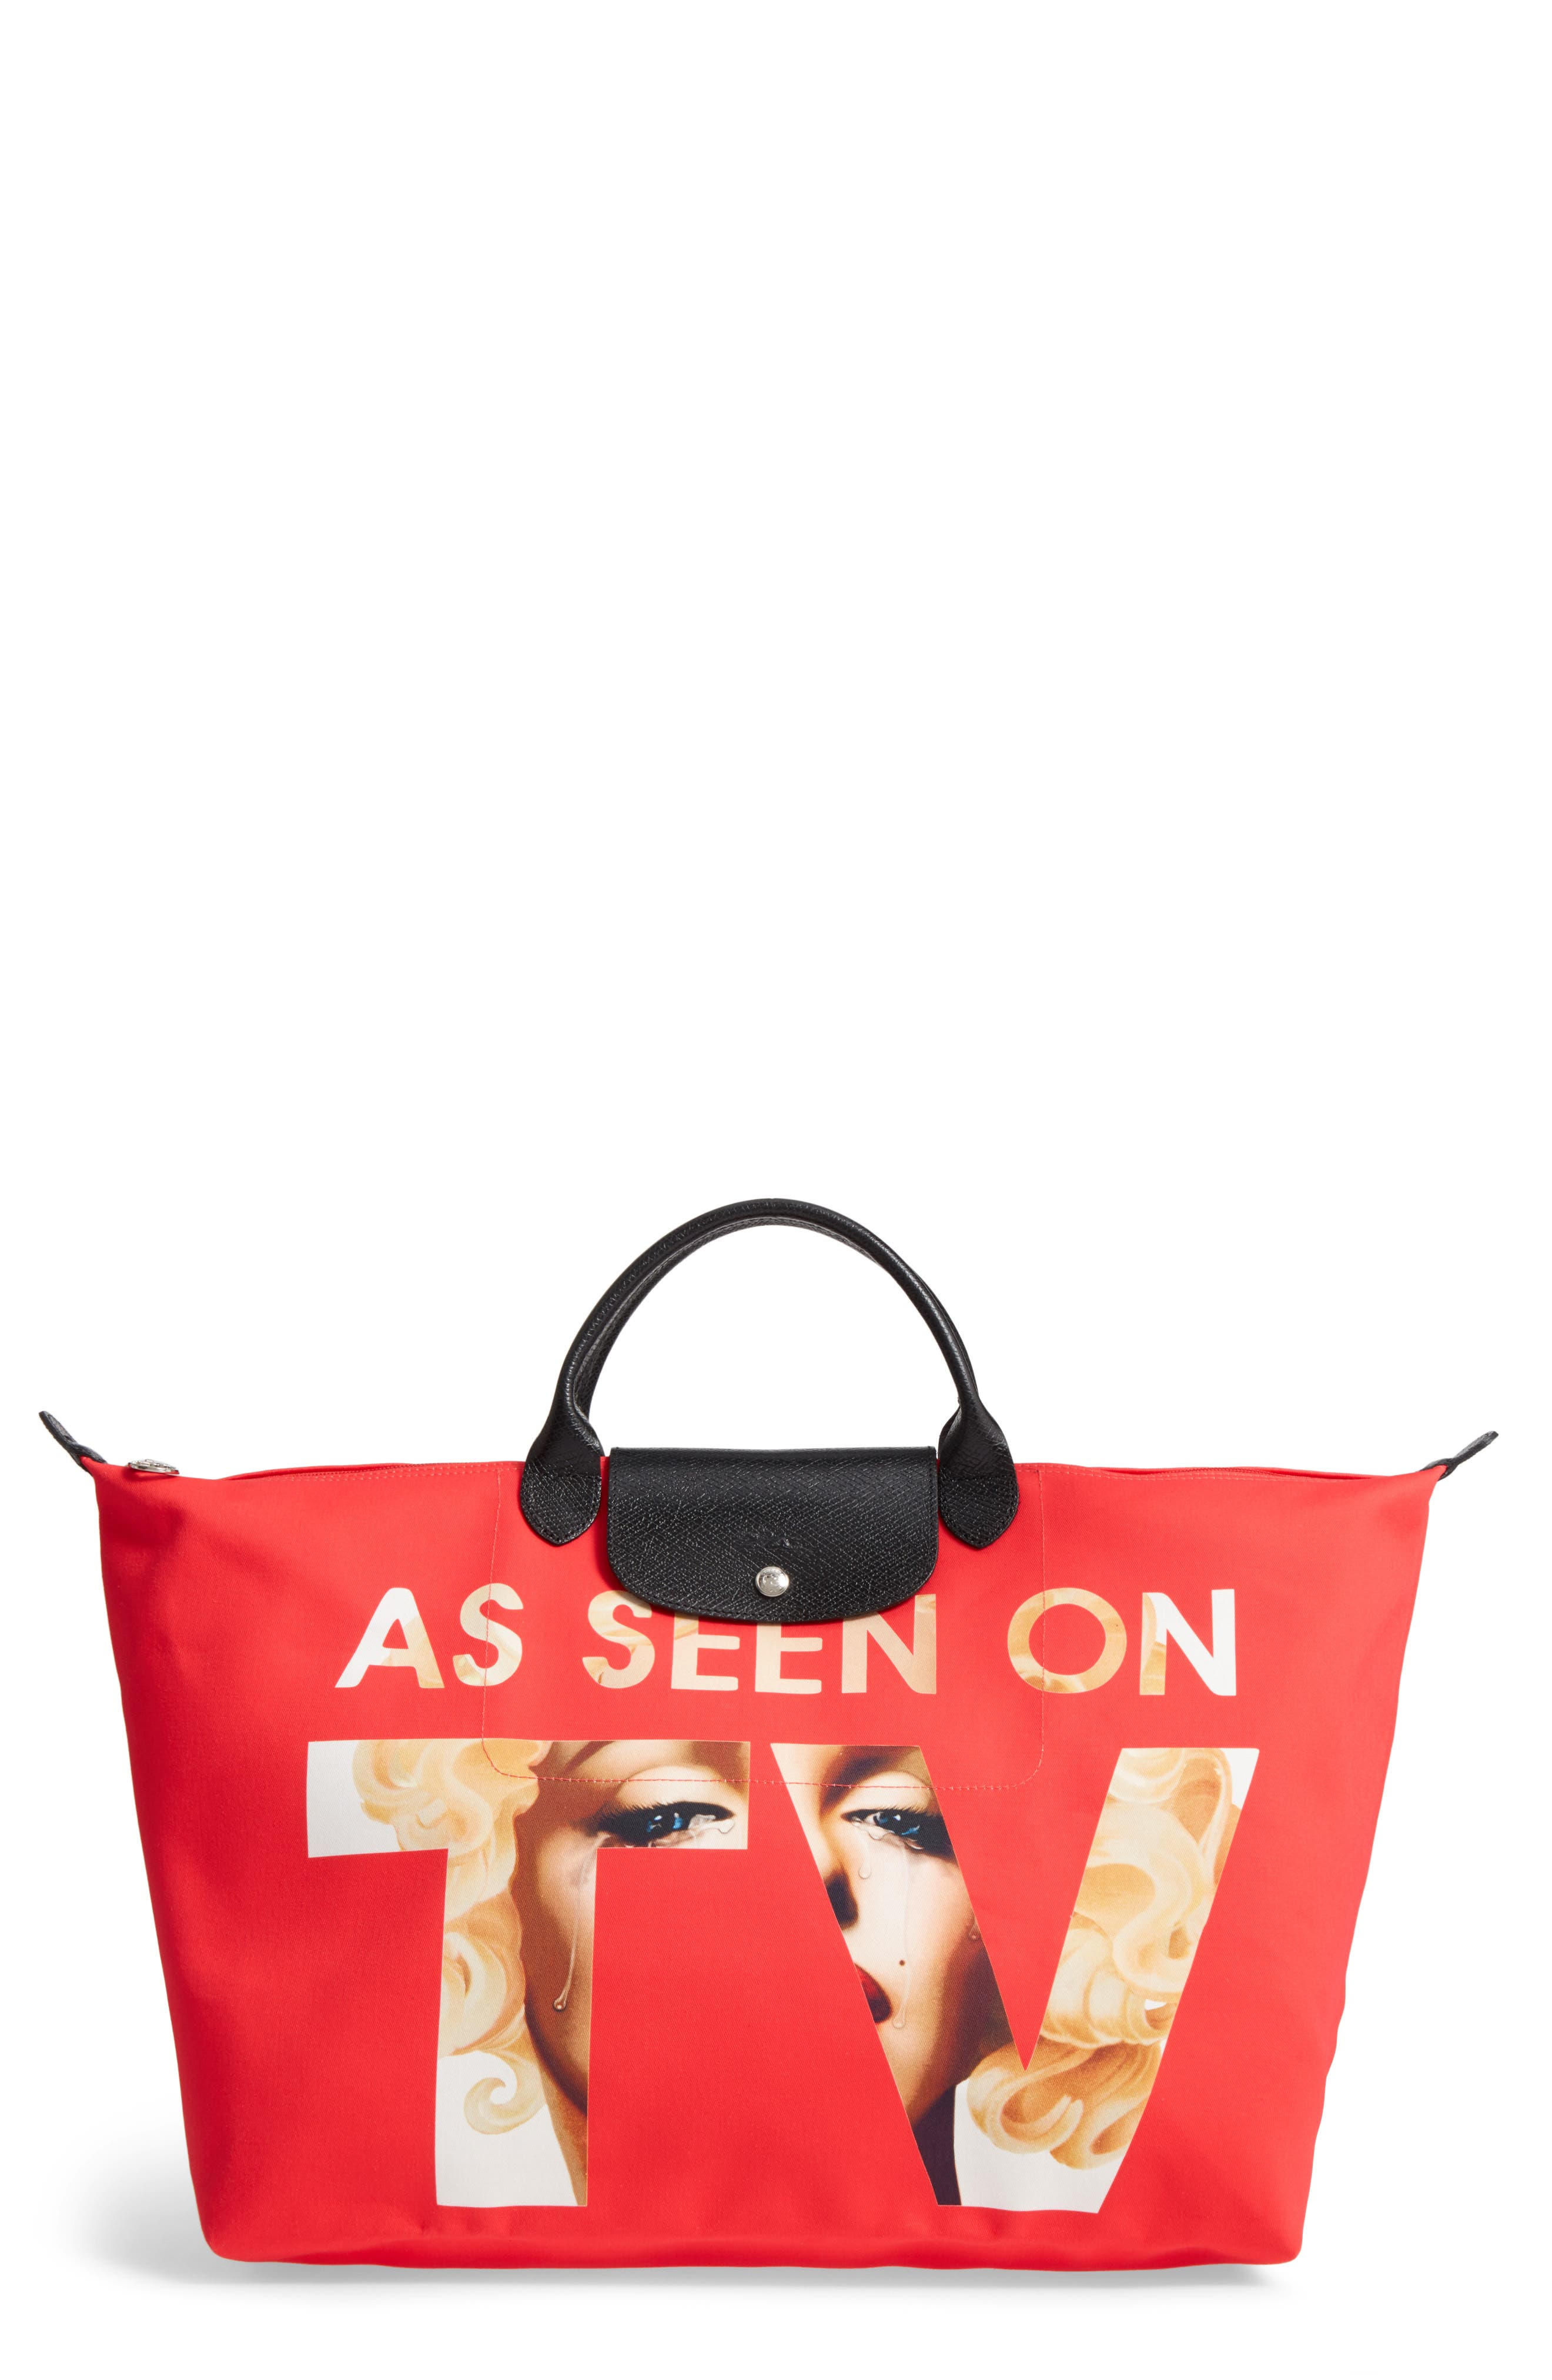 Main Image - Longchamp x Jeremy Scott As Seen on TV Tote